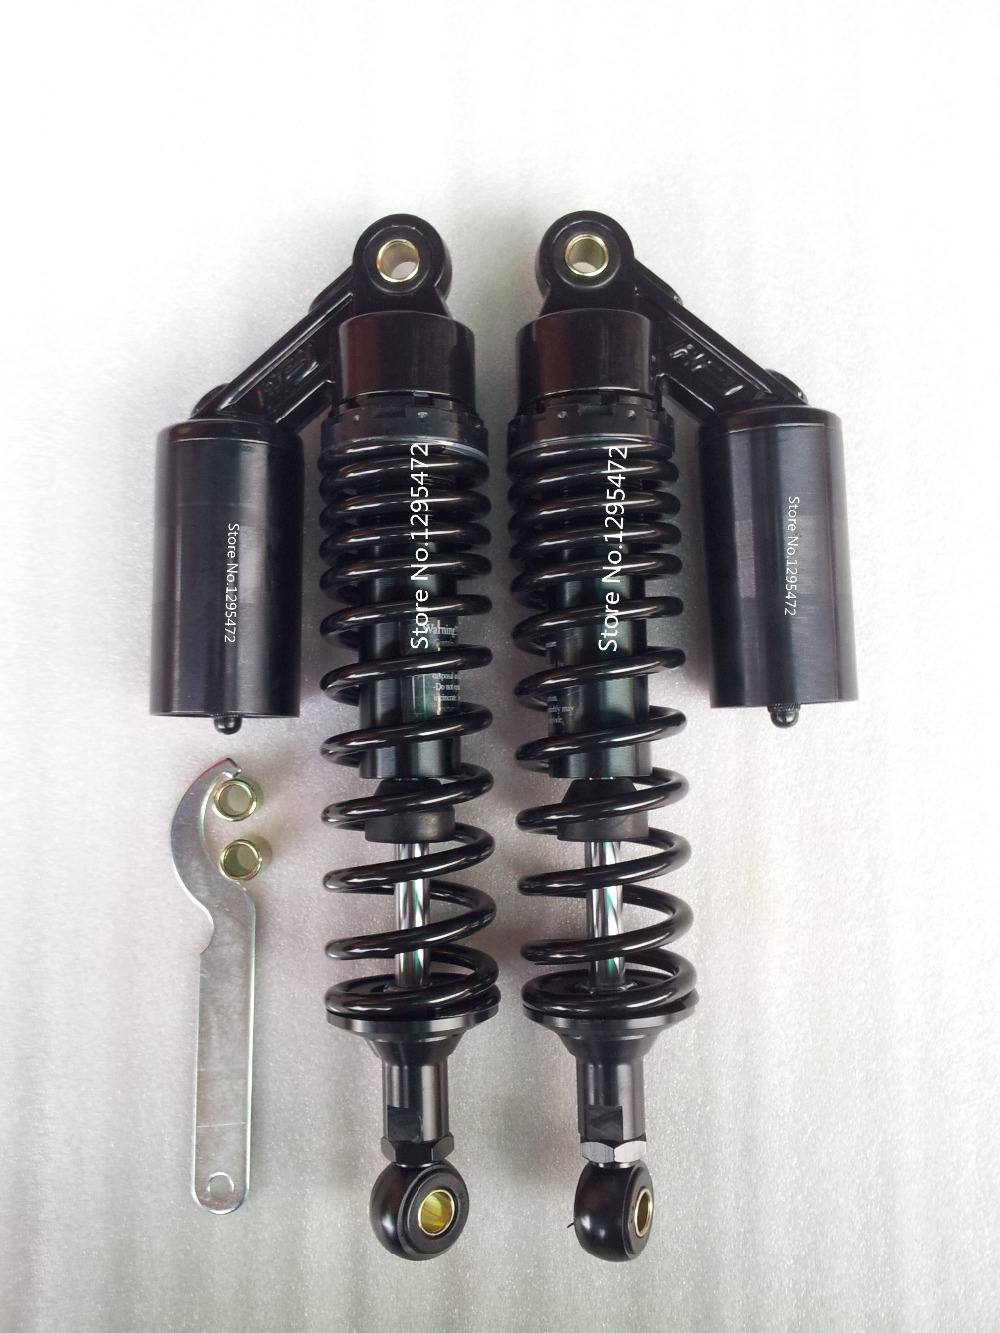 new all black 340mm 8mm spring rear air shock absorbers FOR cb400 99-11 vtec 92-98 sf xjr400 Dirt Gokart ATV MOTORCYCLE